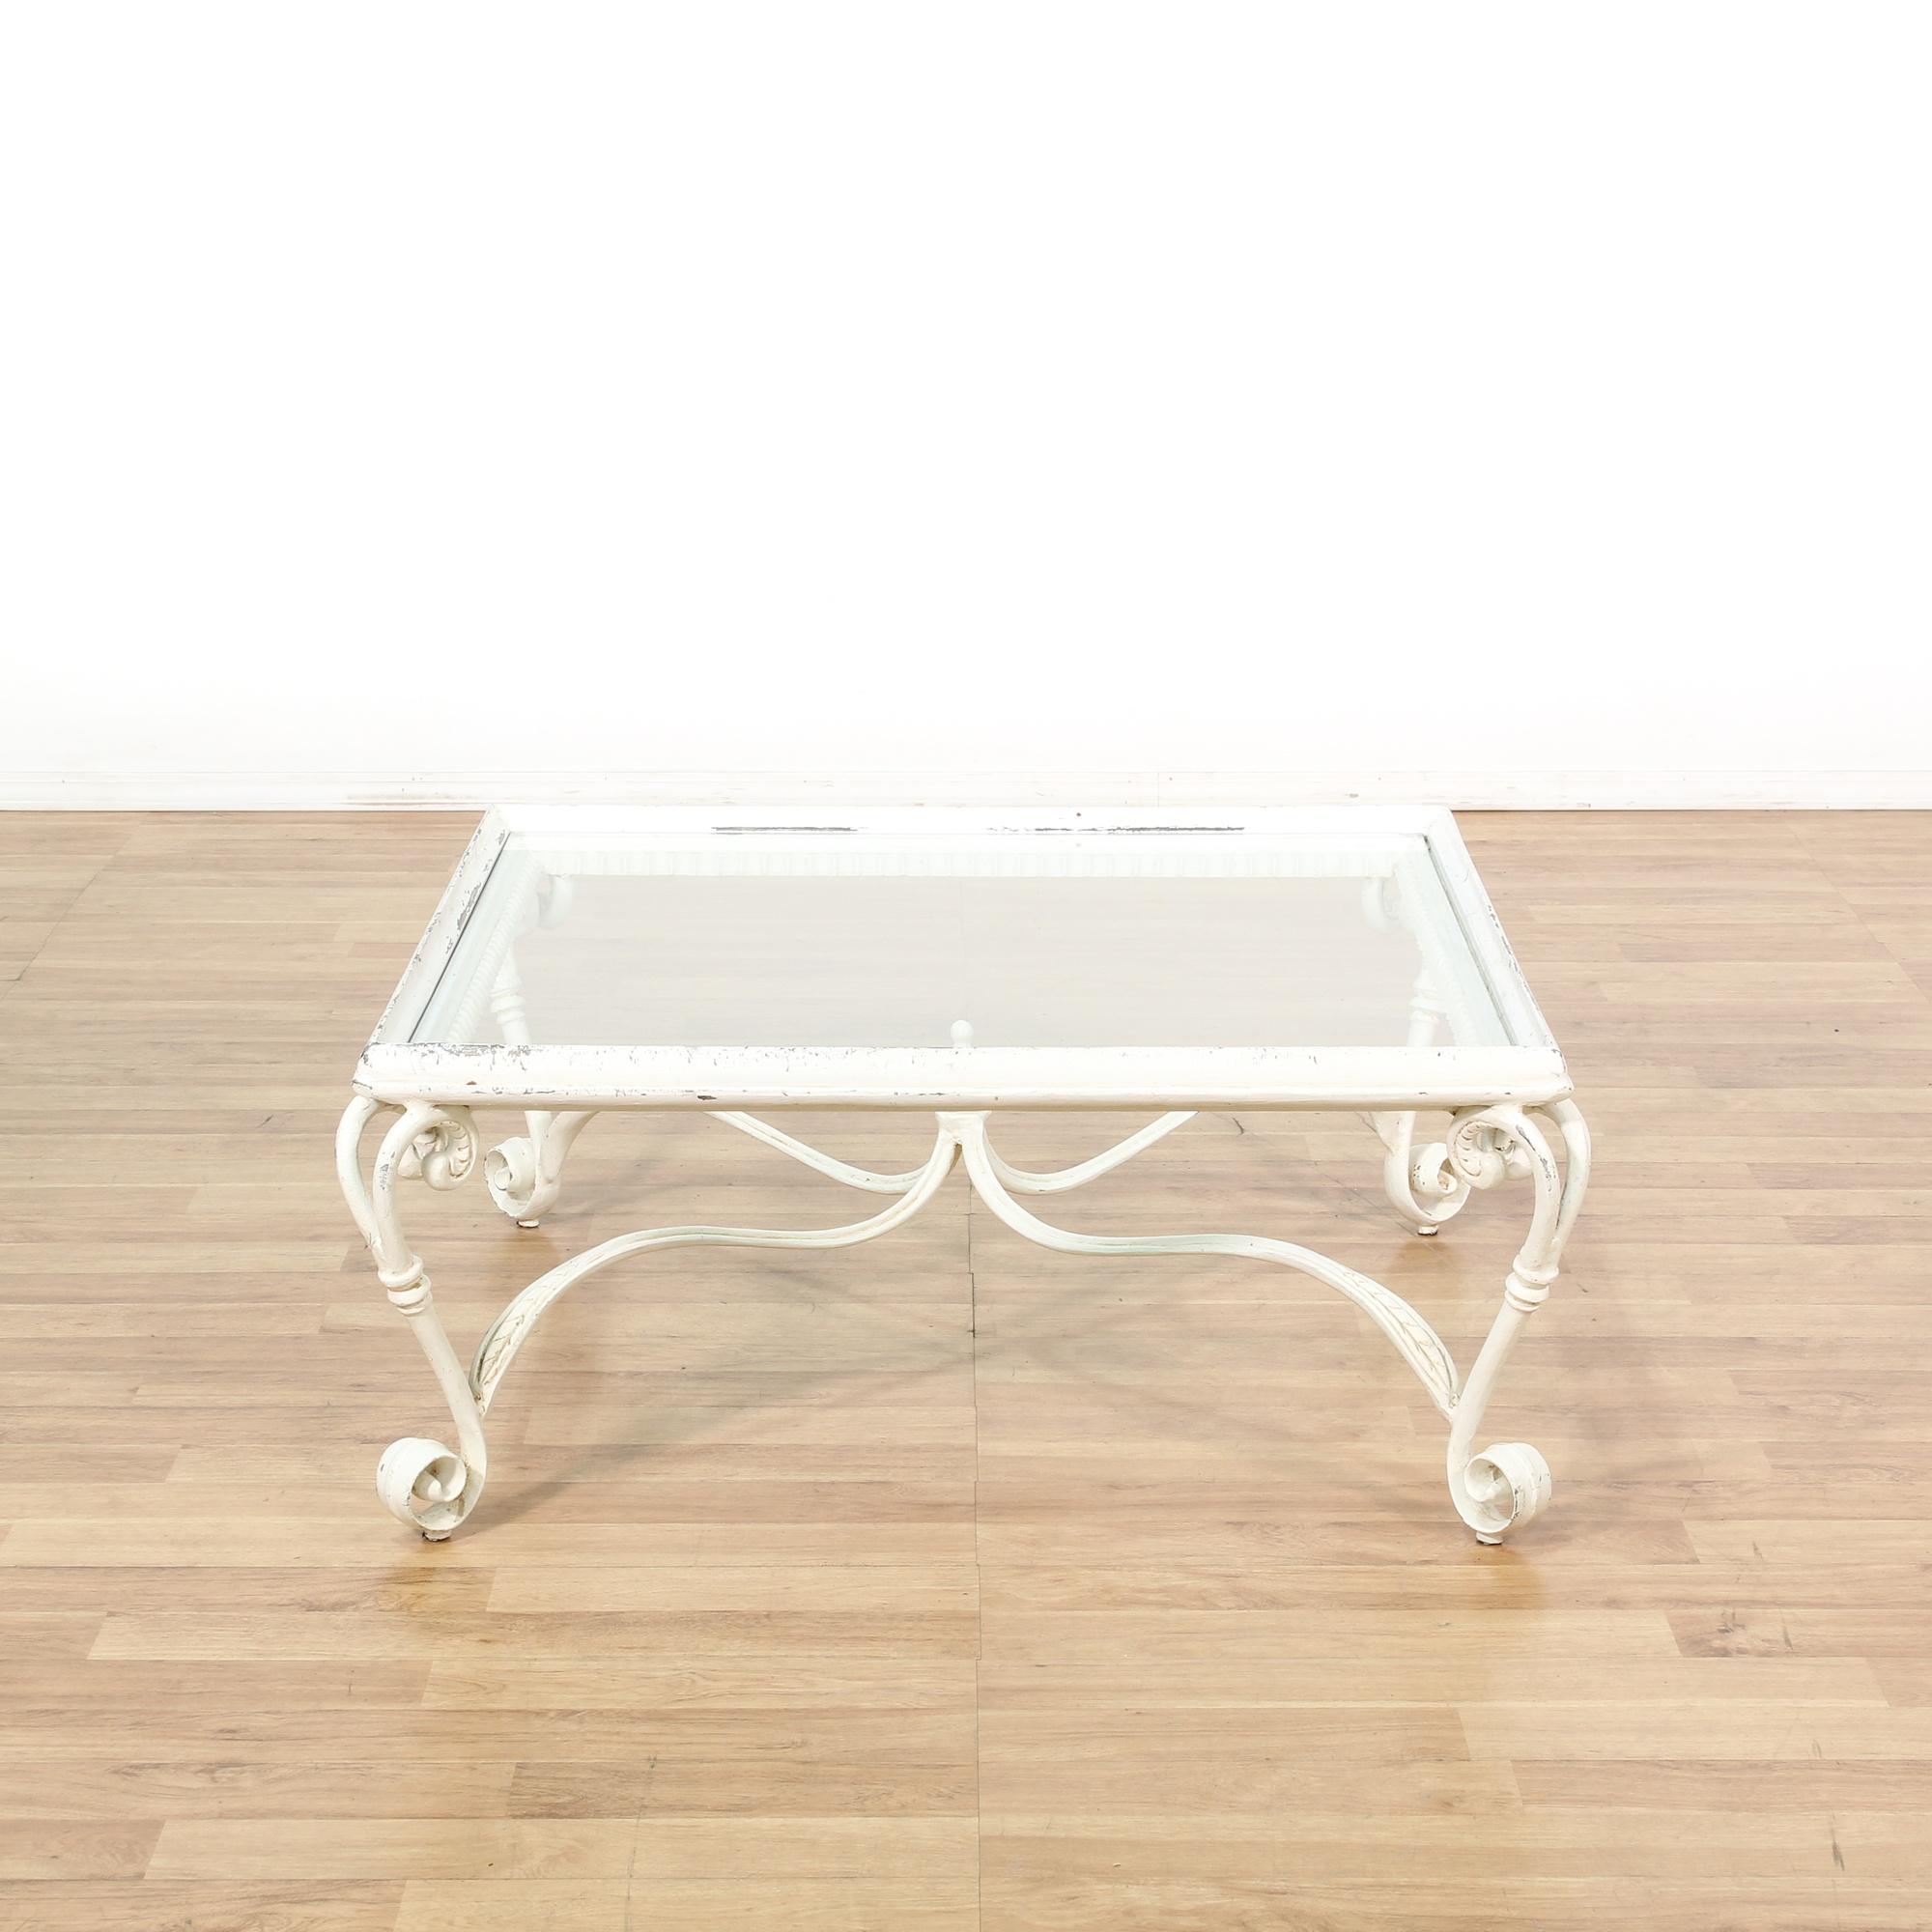 Shabby Chic Coffee Table Nz: Square Shabby Chic White Glass Top Coffee Table